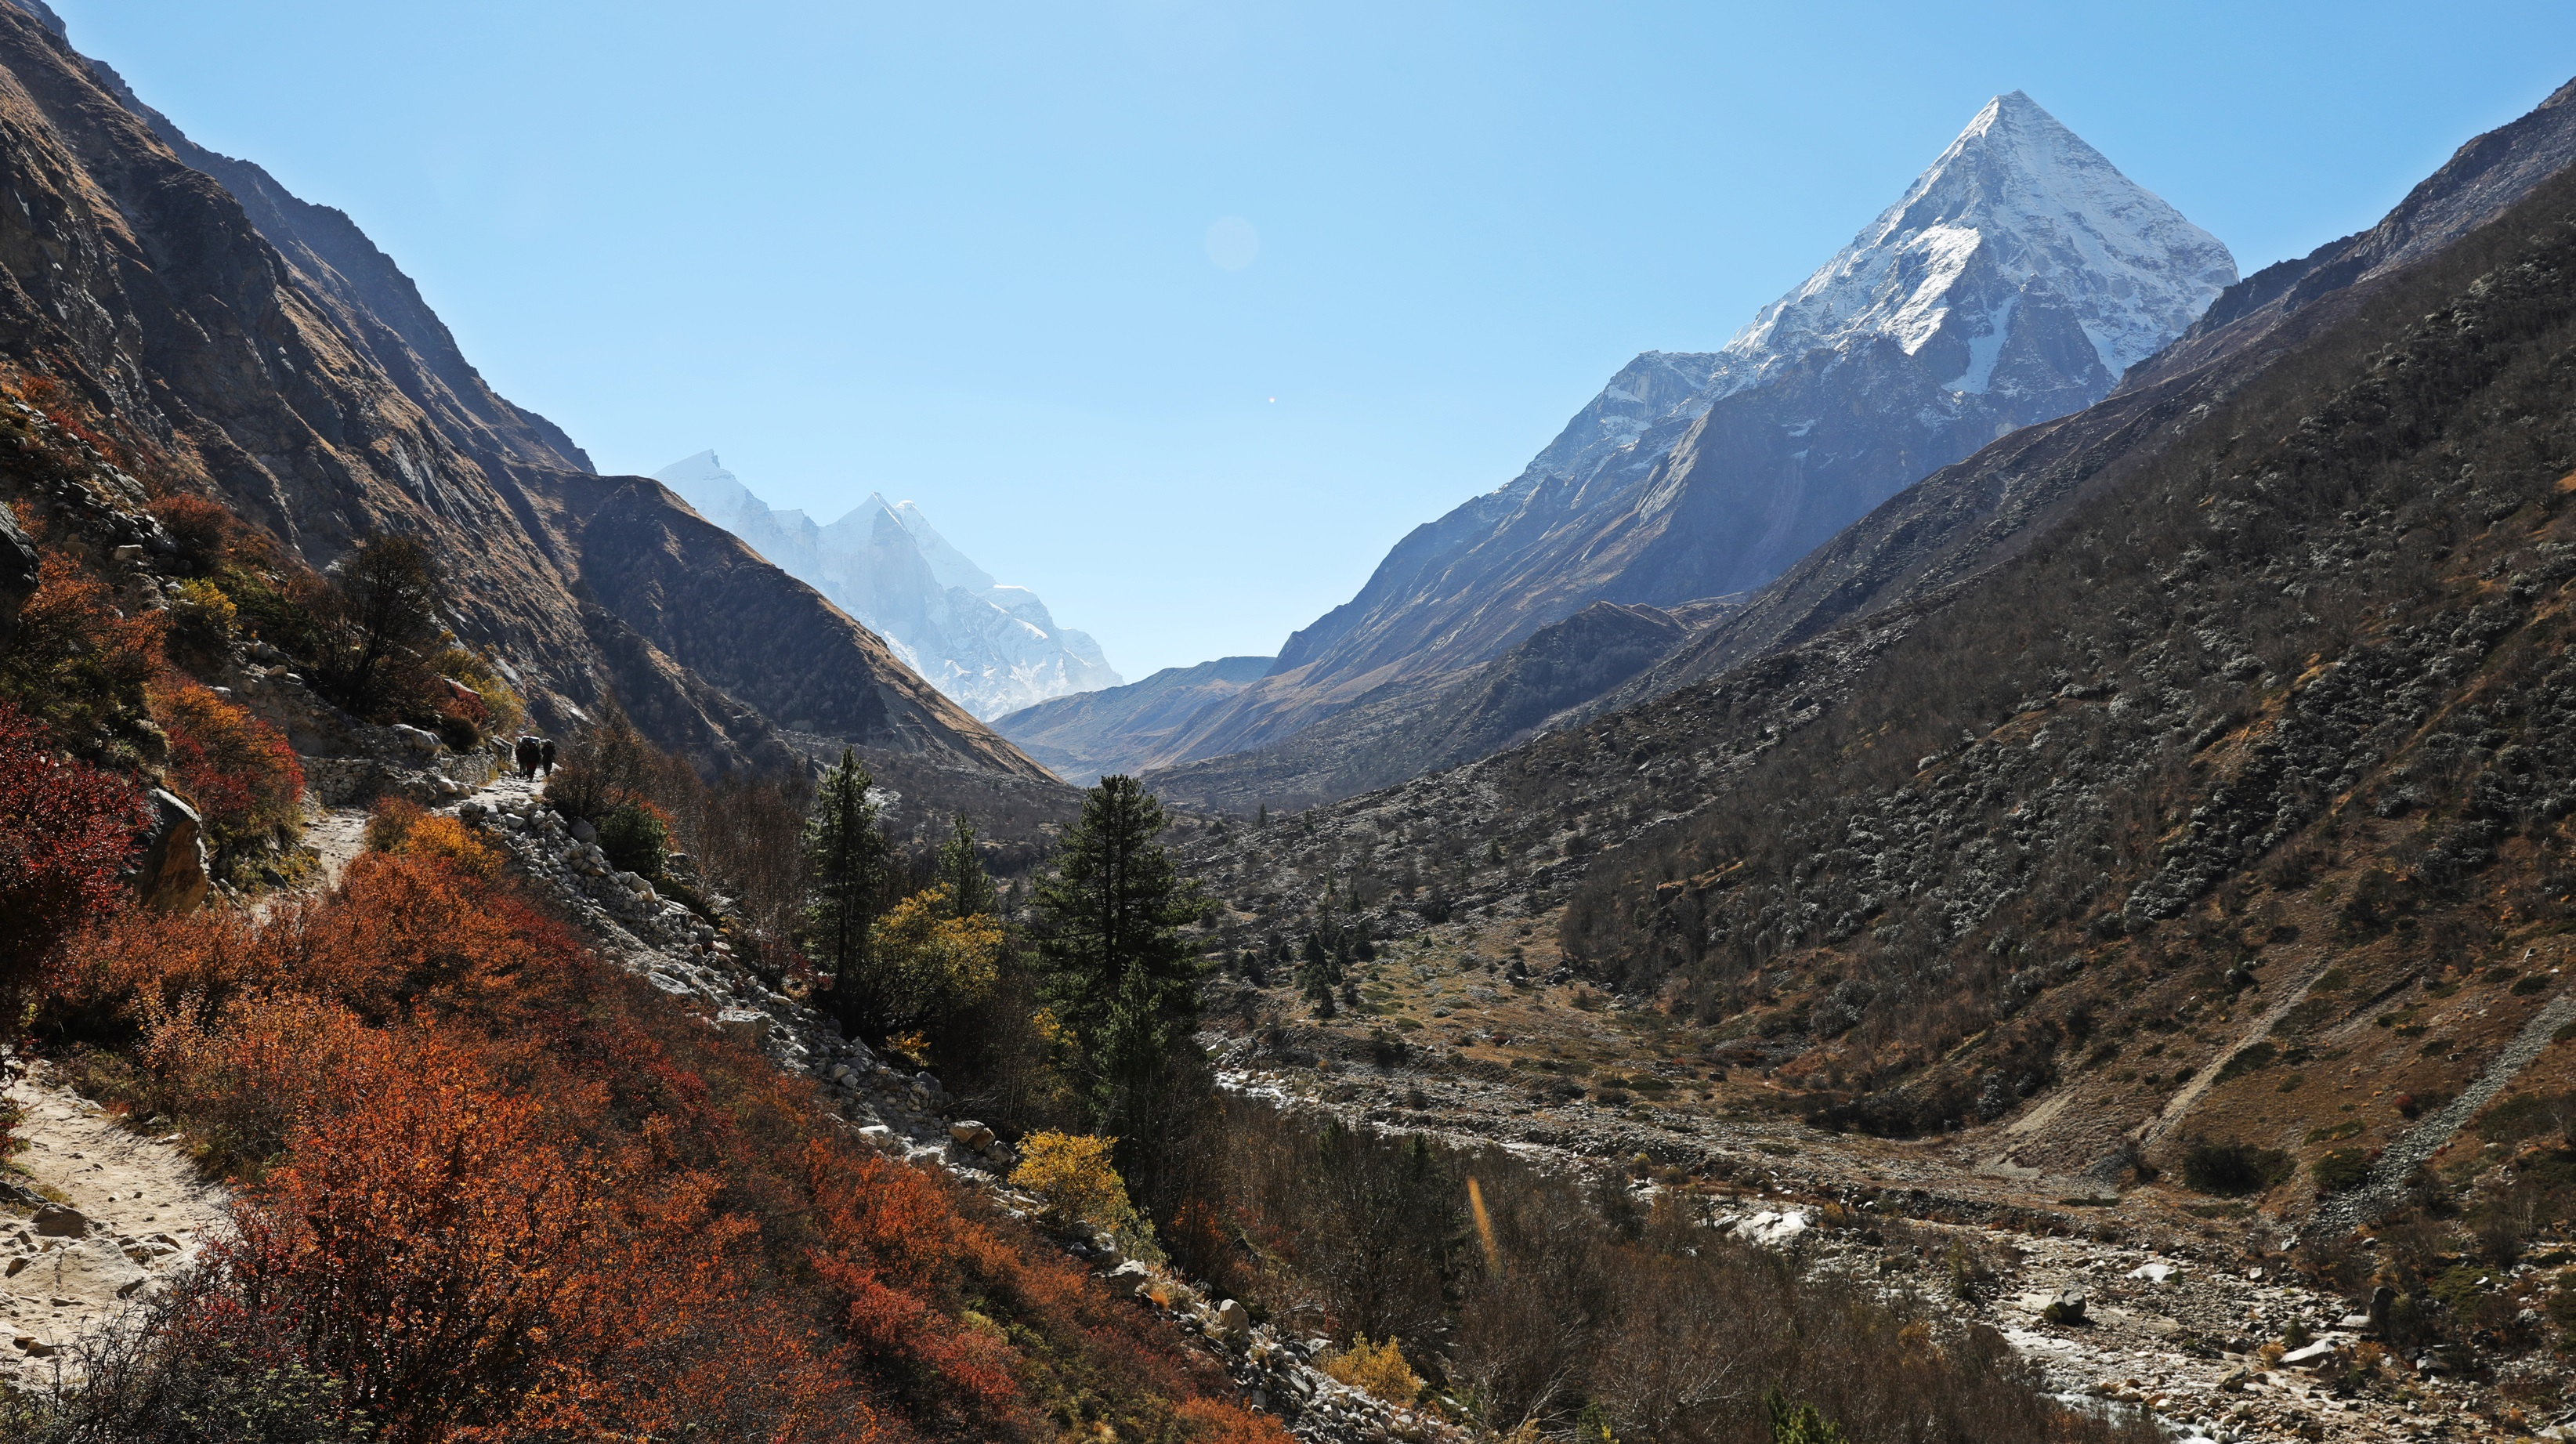 Meru North and the Bhagirathi Valley